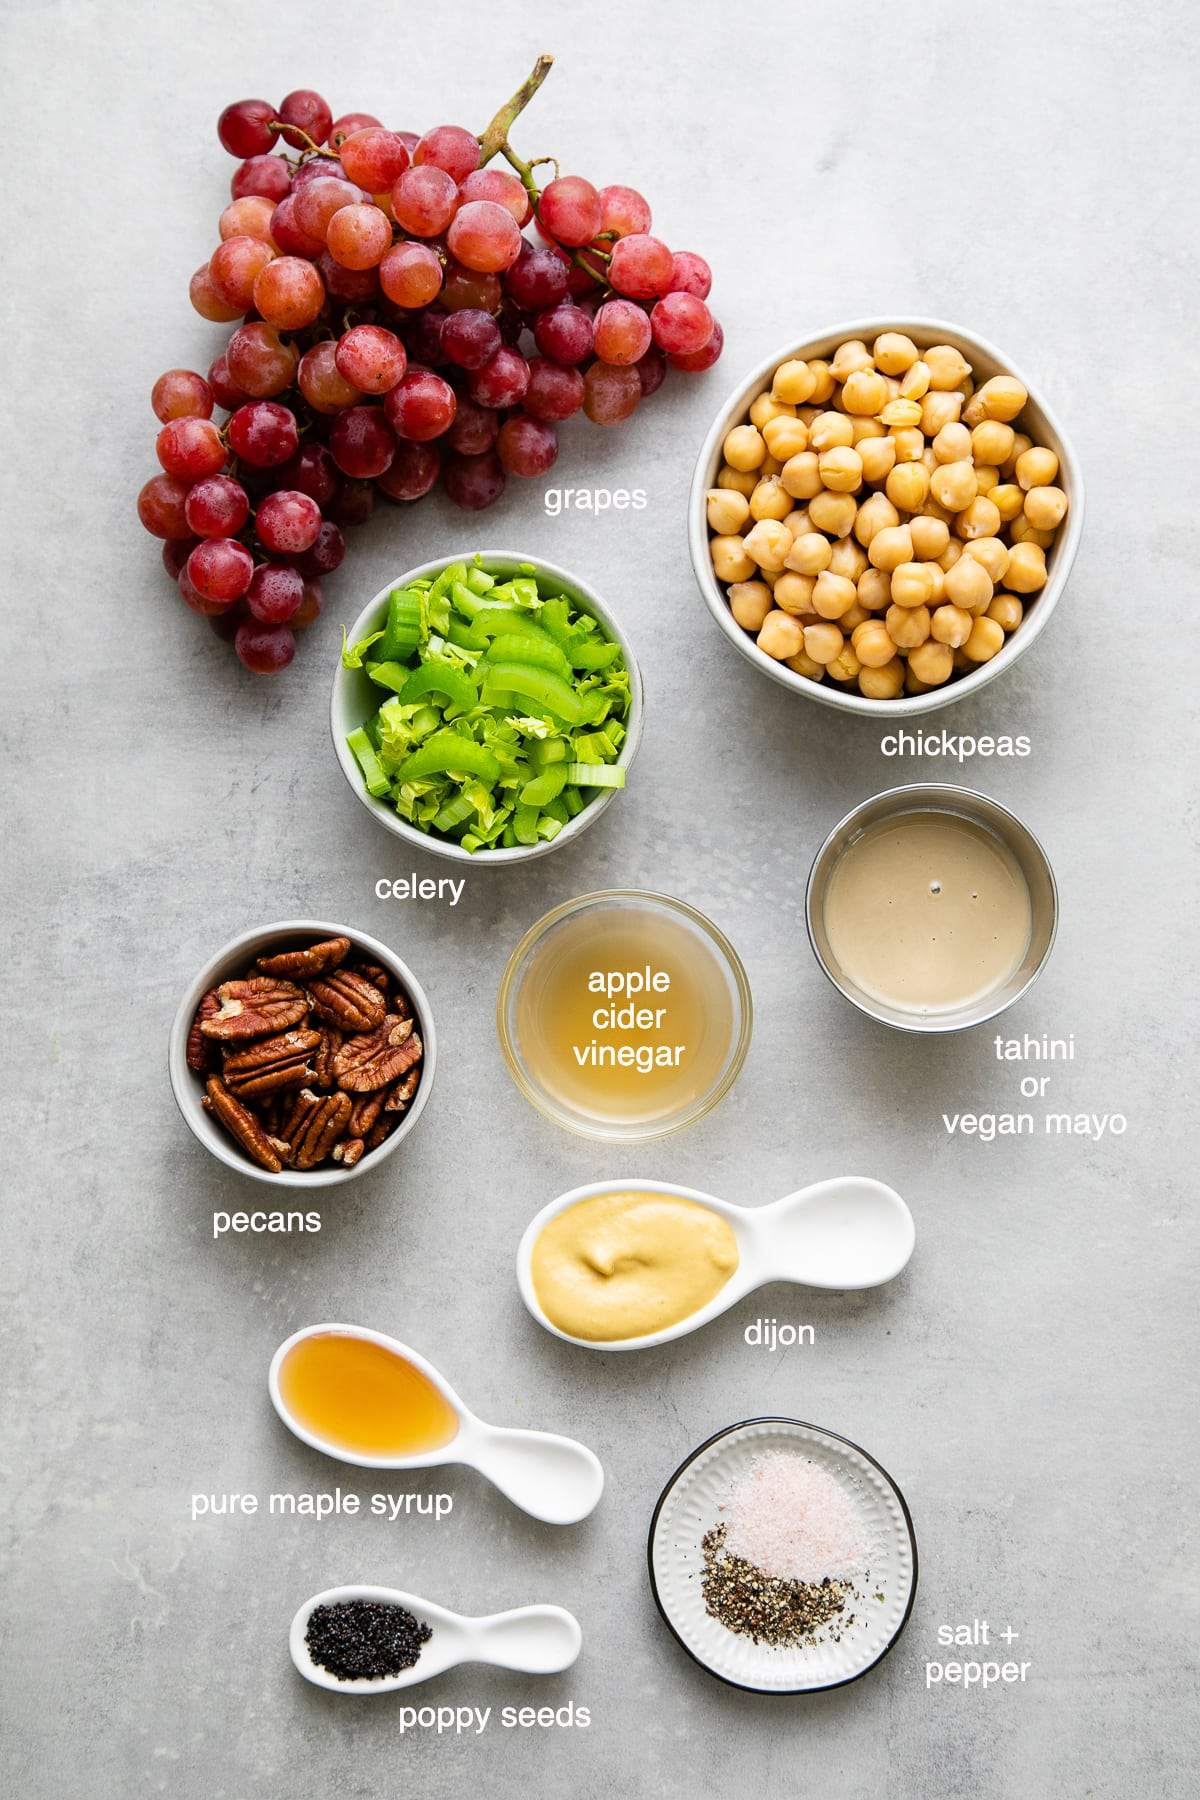 top down view of ingredients used to make healthy chickpea chicken salad recipe.